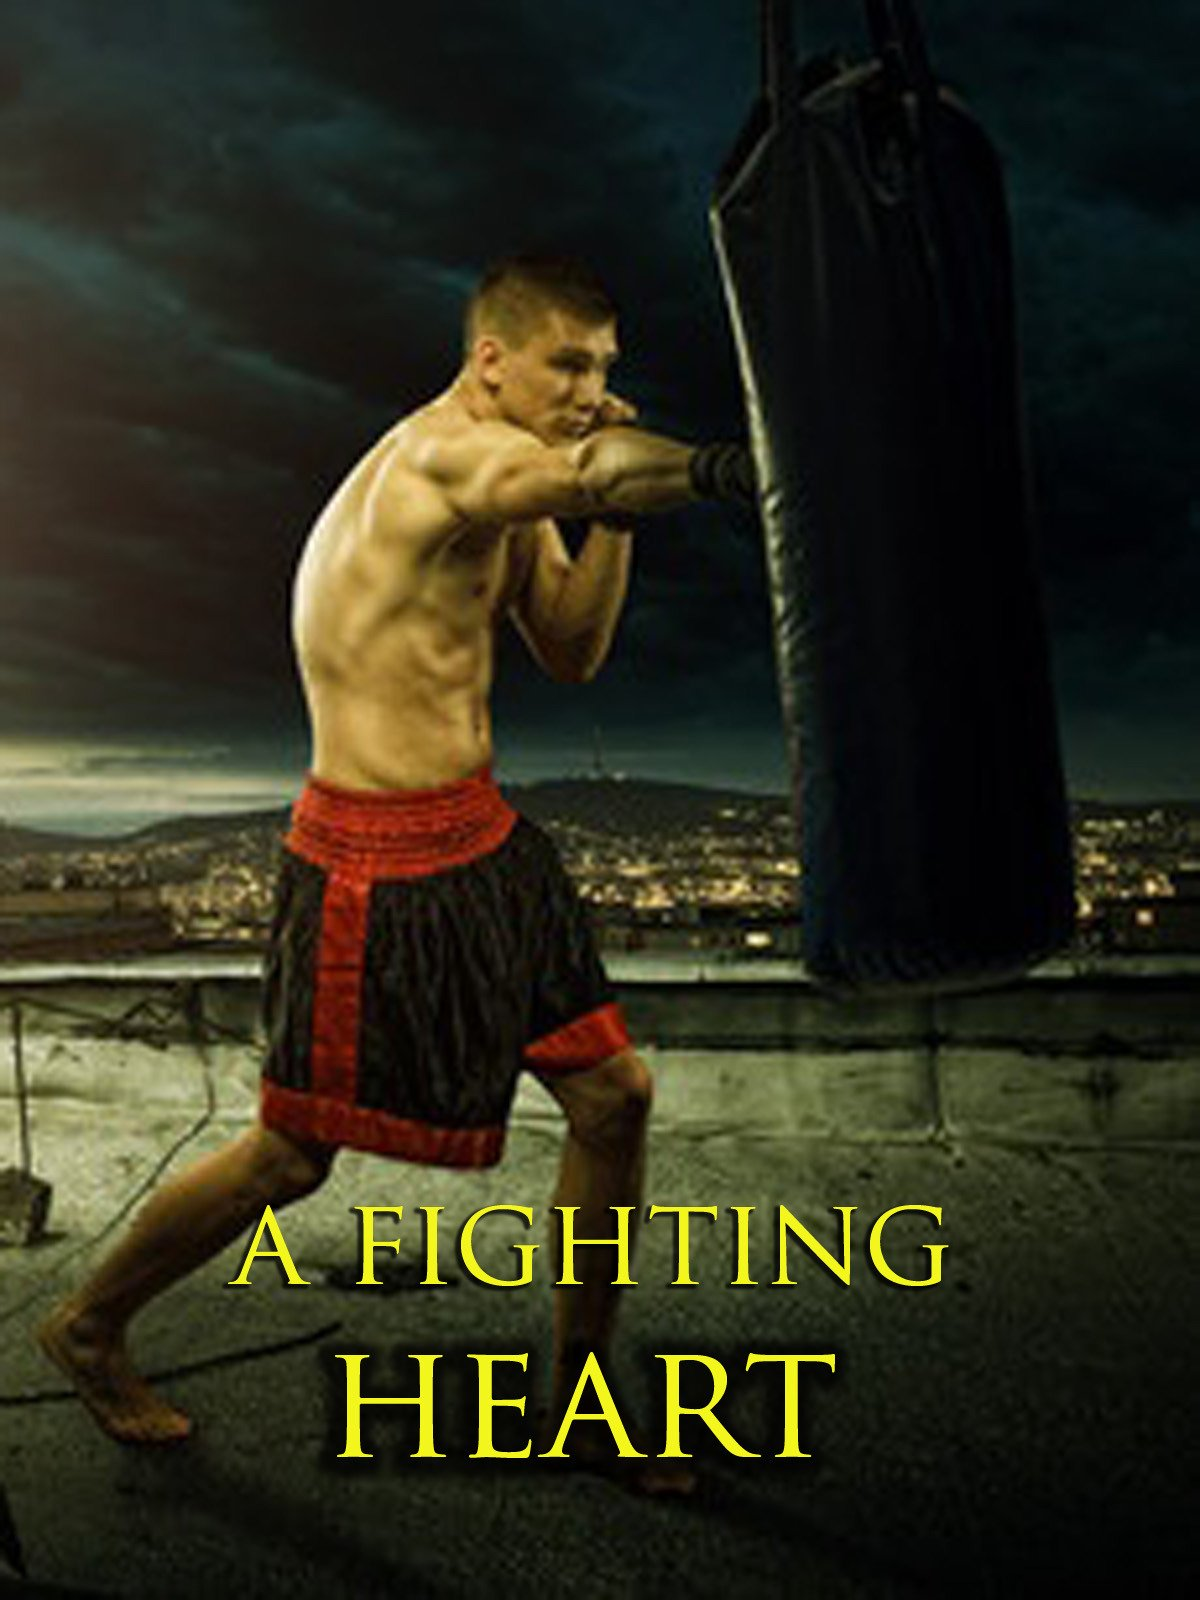 A Fighting Heart